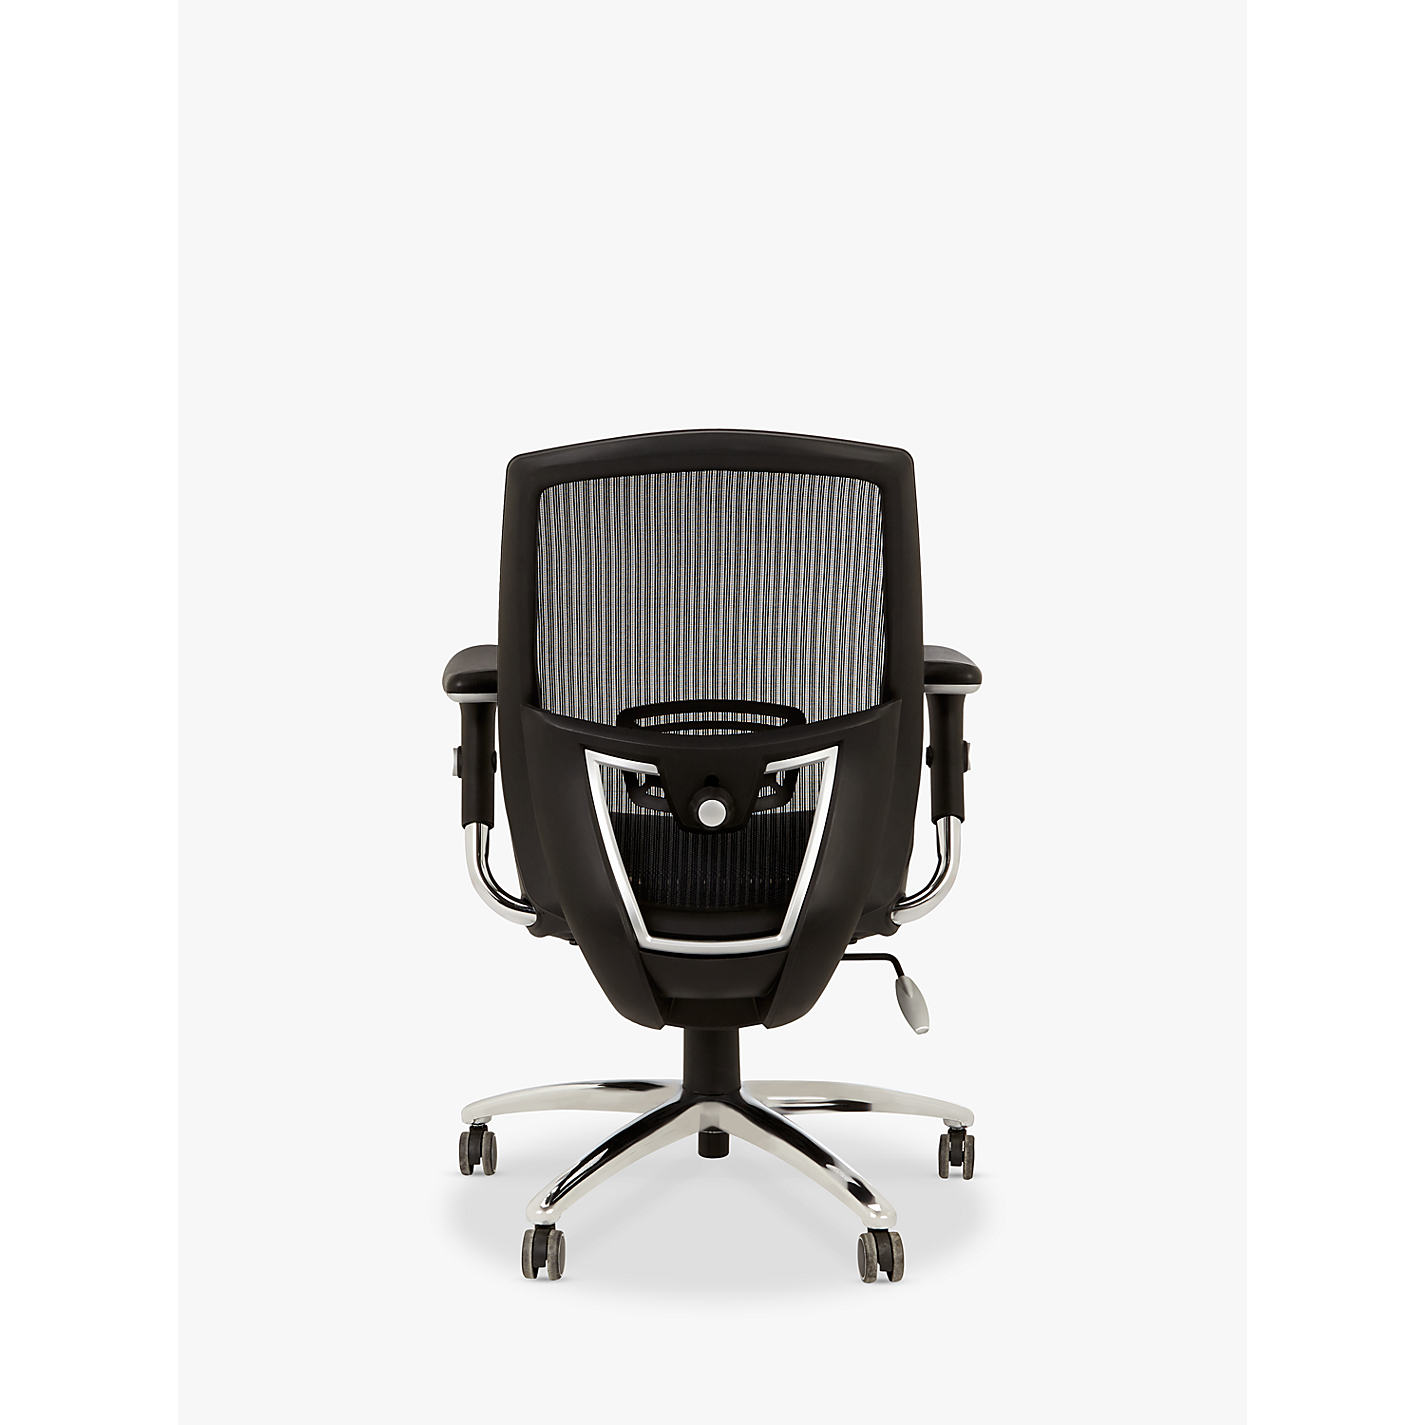 Buy John Lewis Murray Ergonomic Office Chair Black John Lewis - Ergonomic office chair uk